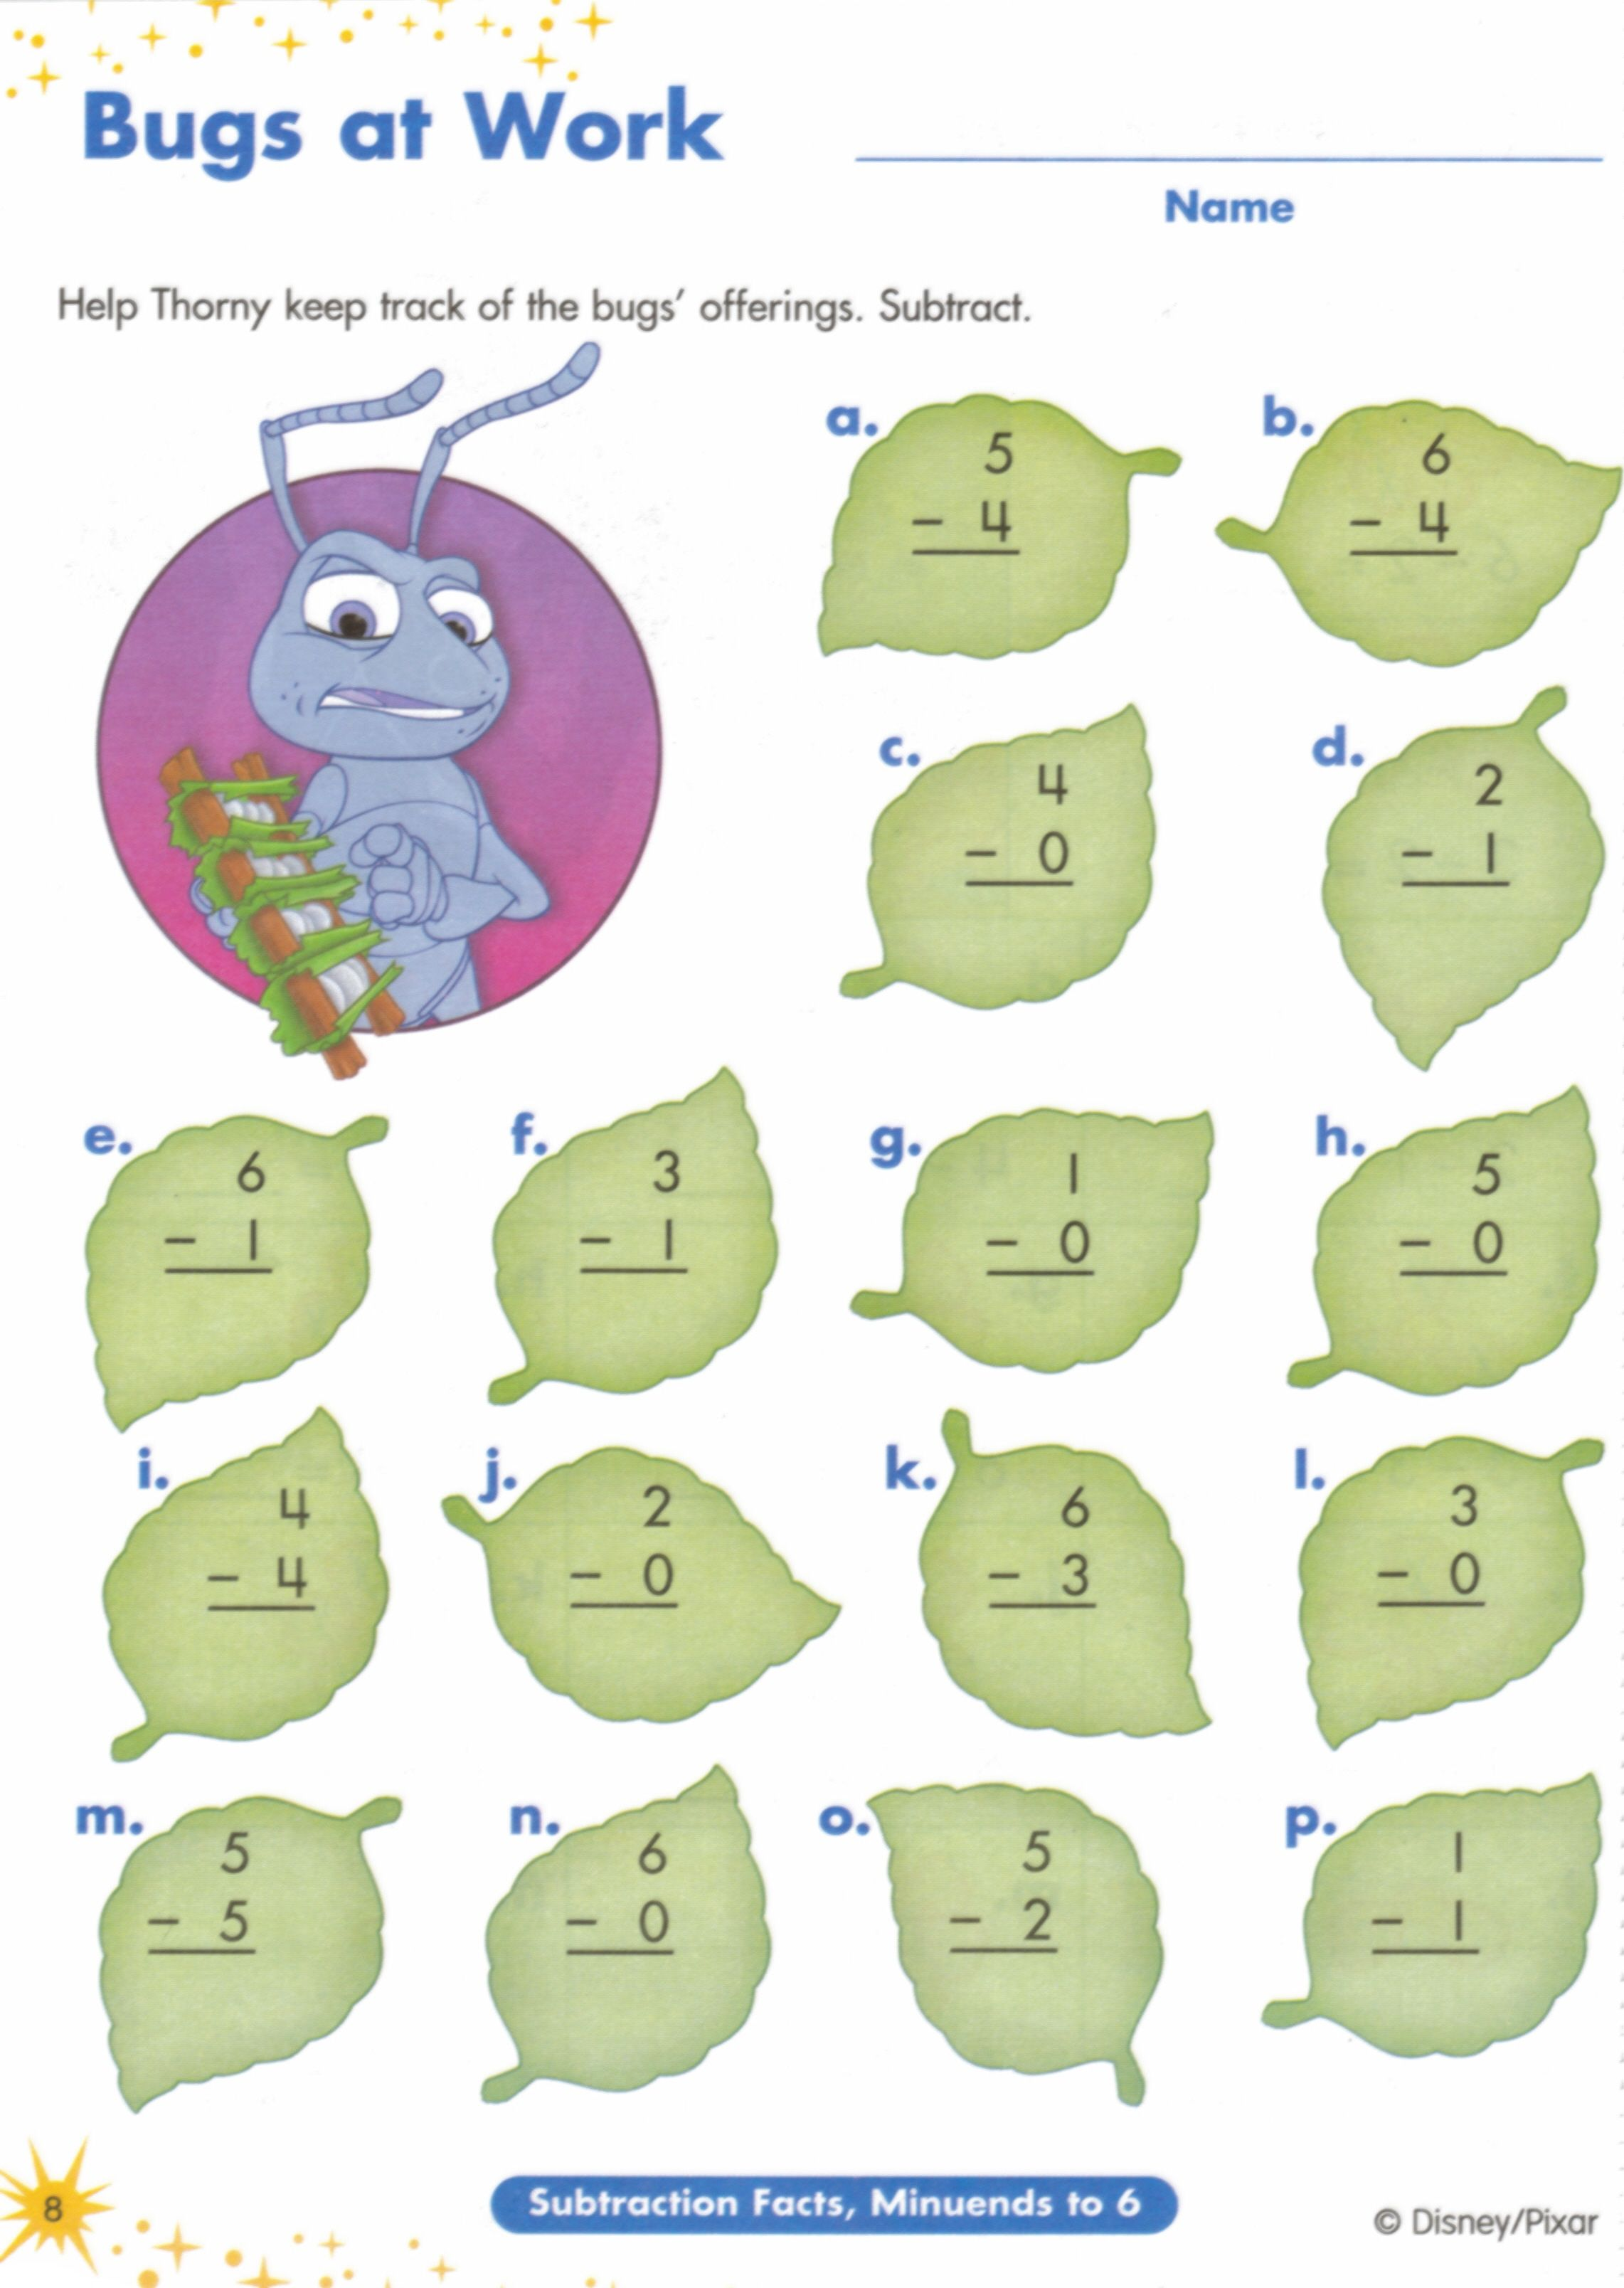 Weirdmailus  Surprising  Images About Worksheets On Pinterest  Fun Facts For Kids  With Inspiring  Images About Worksheets On Pinterest  Fun Facts For Kids Earth Day Worksheets And Jungles With Beauteous Worksheet On Electron Configuration Also Kindergarten Addition And Subtraction Worksheets In Addition Translations Worksheet Kuta And Mole Review Worksheet Answers As Well As Coulombic Attraction Worksheet Answers Additionally Solar System Worksheets For Th Grade From Pinterestcom With Weirdmailus  Inspiring  Images About Worksheets On Pinterest  Fun Facts For Kids  With Beauteous  Images About Worksheets On Pinterest  Fun Facts For Kids Earth Day Worksheets And Jungles And Surprising Worksheet On Electron Configuration Also Kindergarten Addition And Subtraction Worksheets In Addition Translations Worksheet Kuta From Pinterestcom